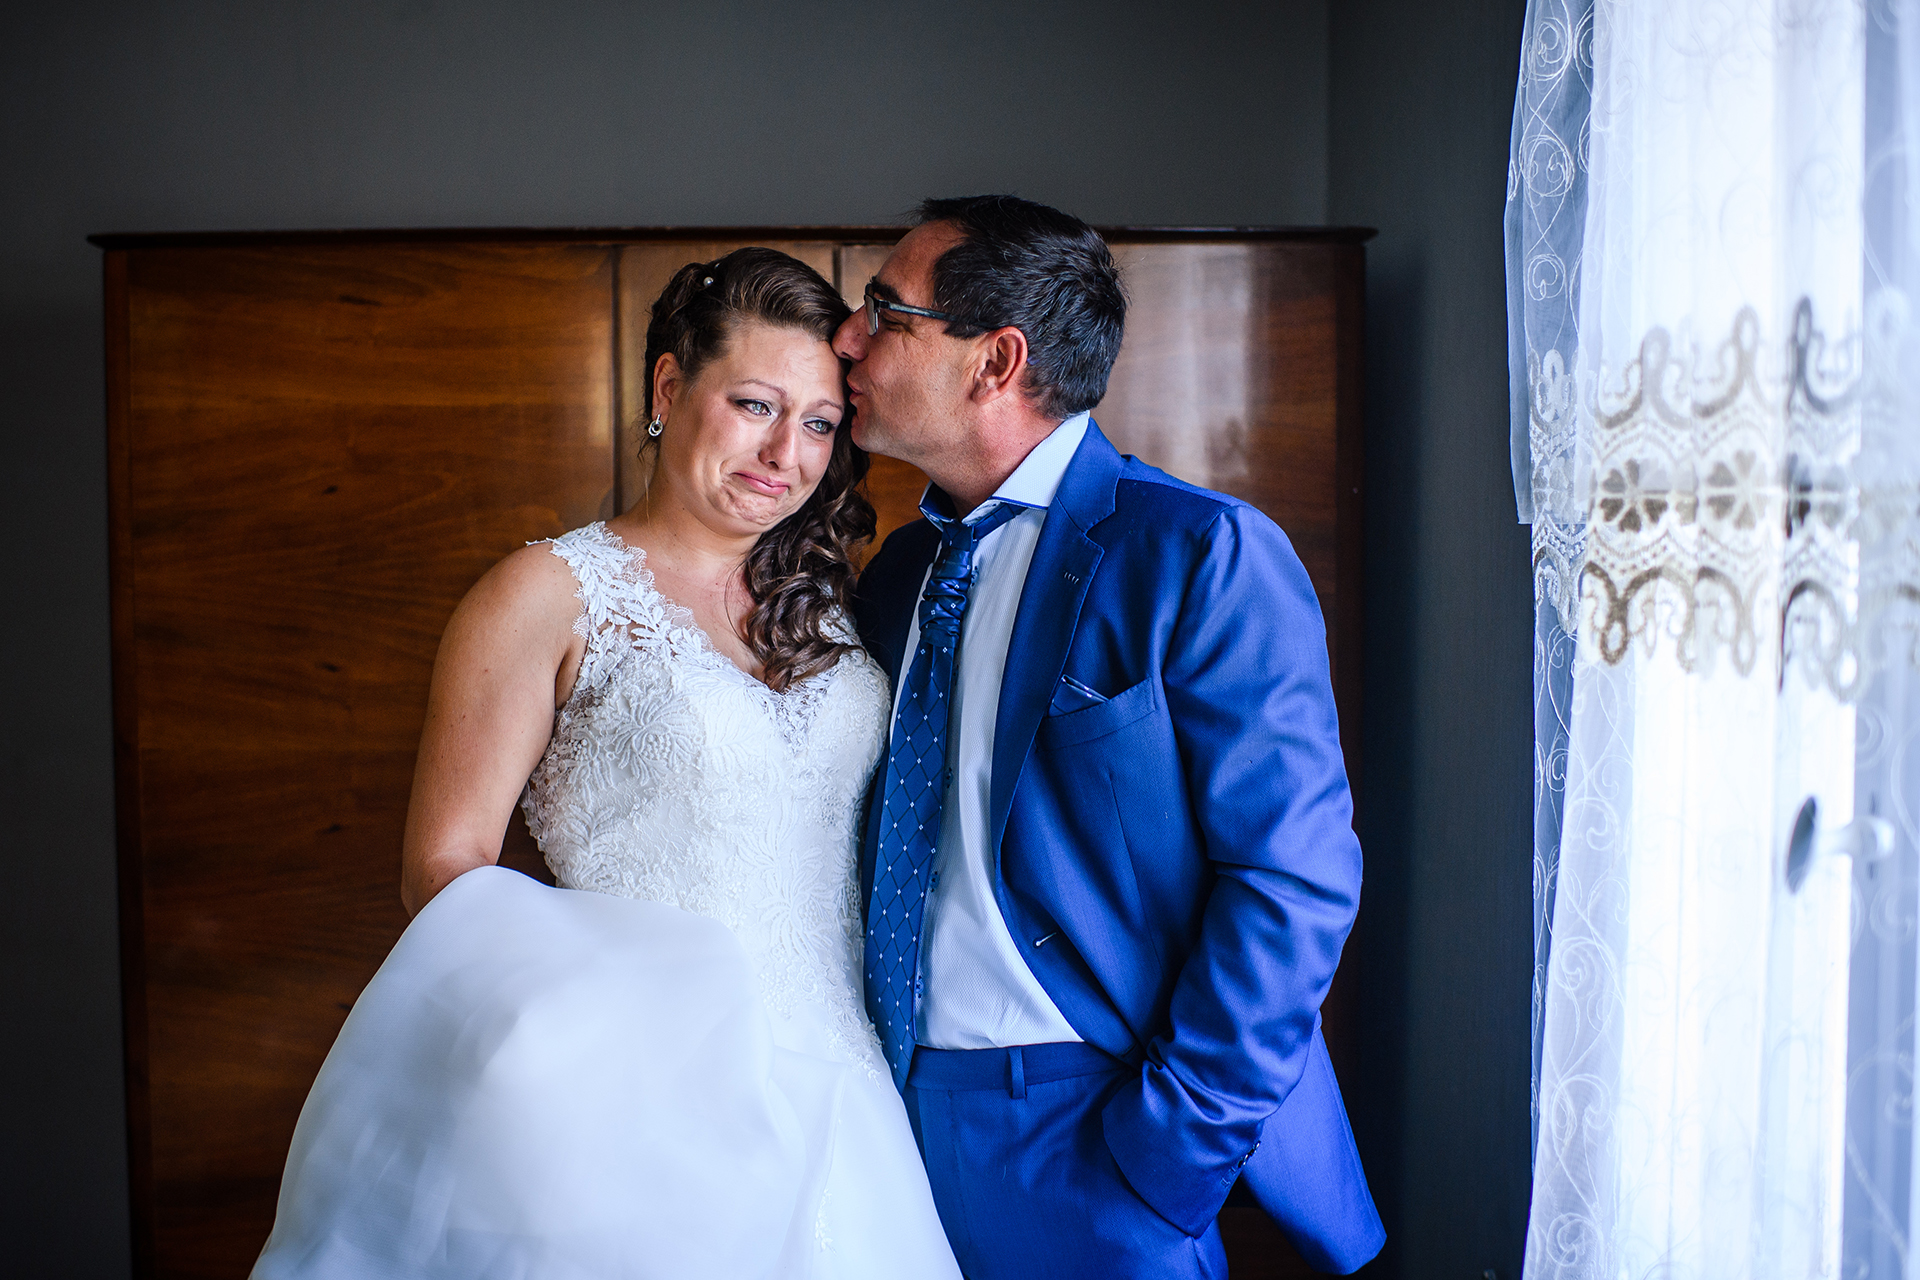 Image created at a Ribaritsa, Bulgaria Elopement | the bride's father gives her a loving kiss on the forehead